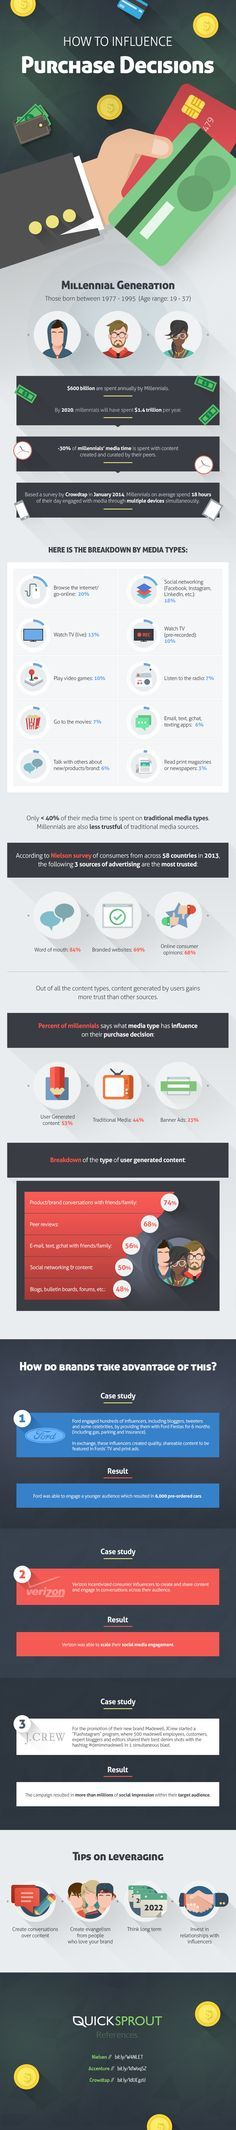 Reaching the Millennials: How to Influence Purchasing Decisions - #infographic #digitalmarketing